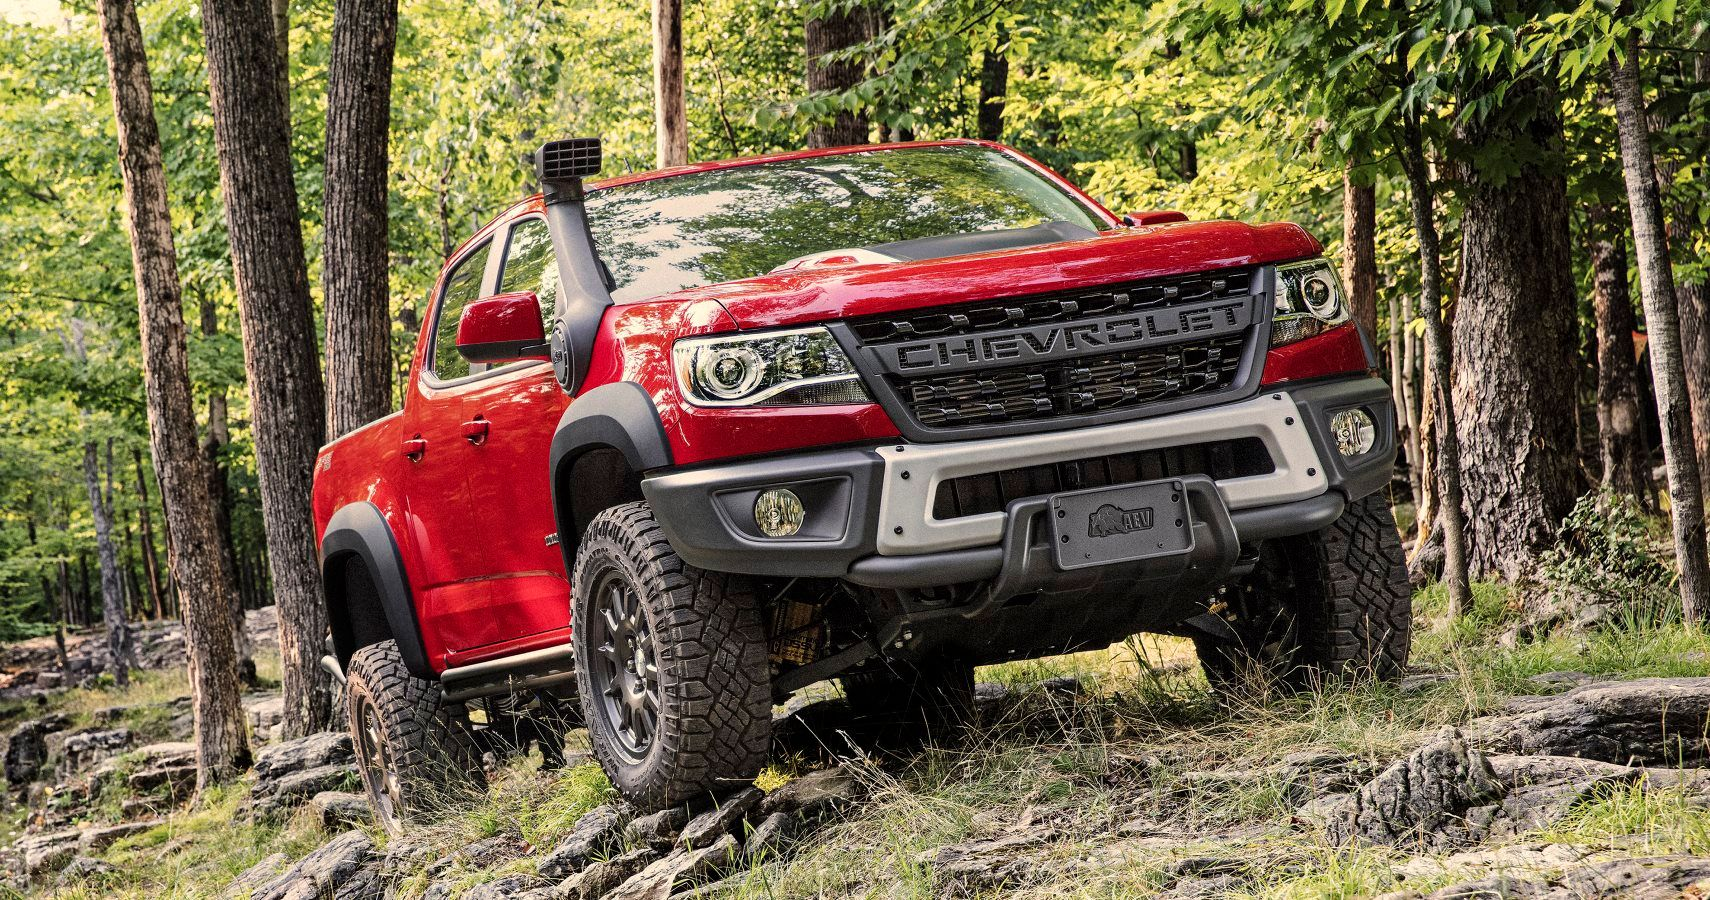 2019 Chevrolet Colorado ZR2 Bison Will Be An Off-Road Monster